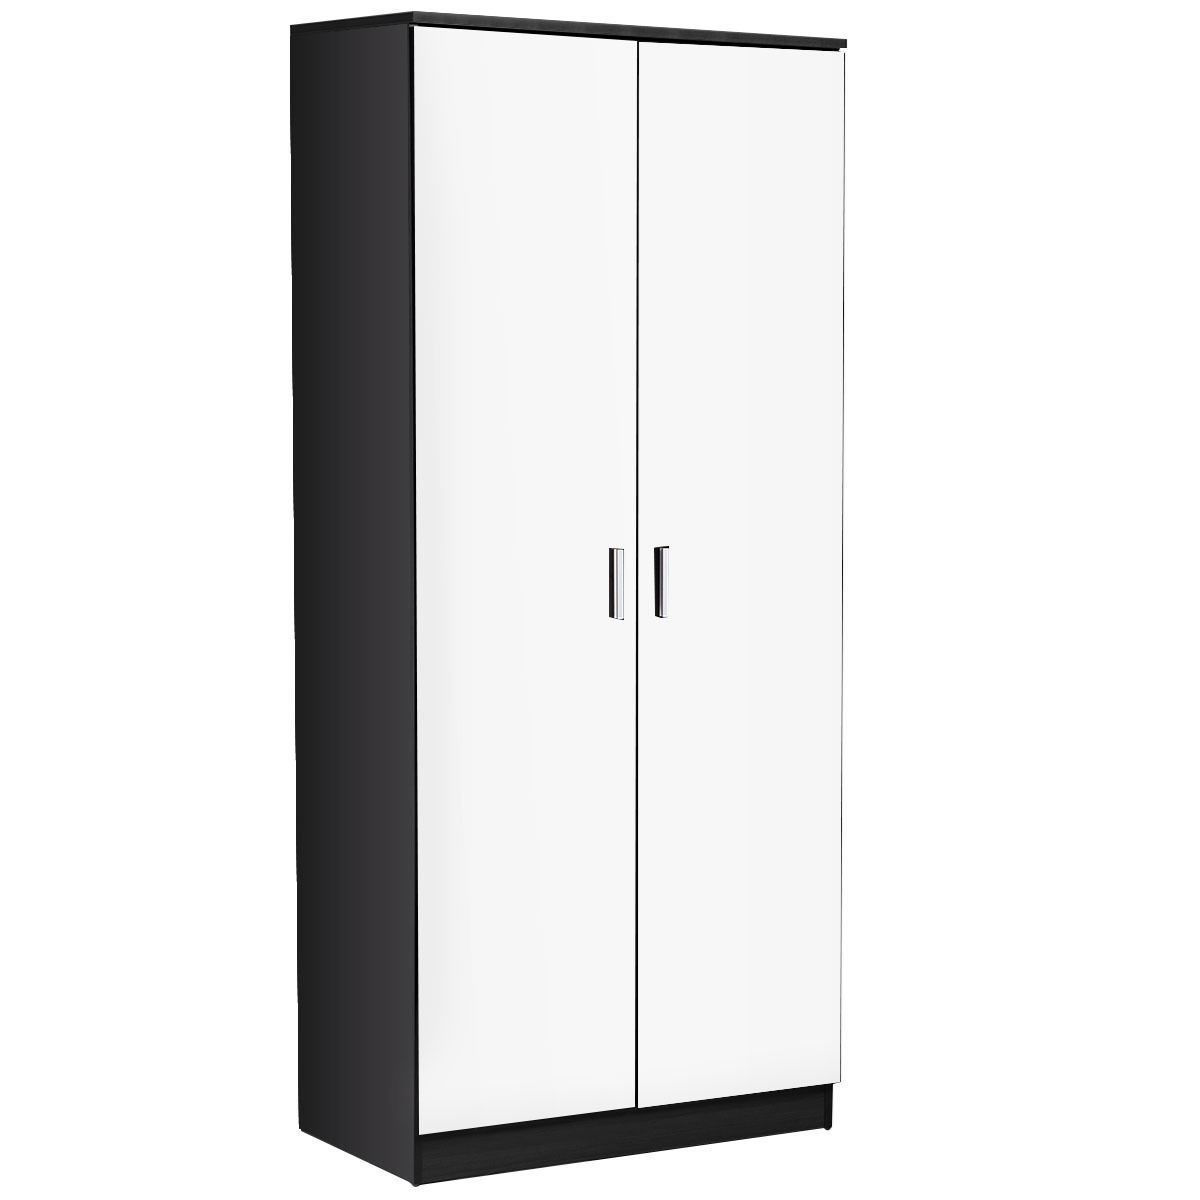 Picture of Trio Bedroom Furniture Set High Gloss 2 Door Wardrobe, Chest and Bedside 3 Piece